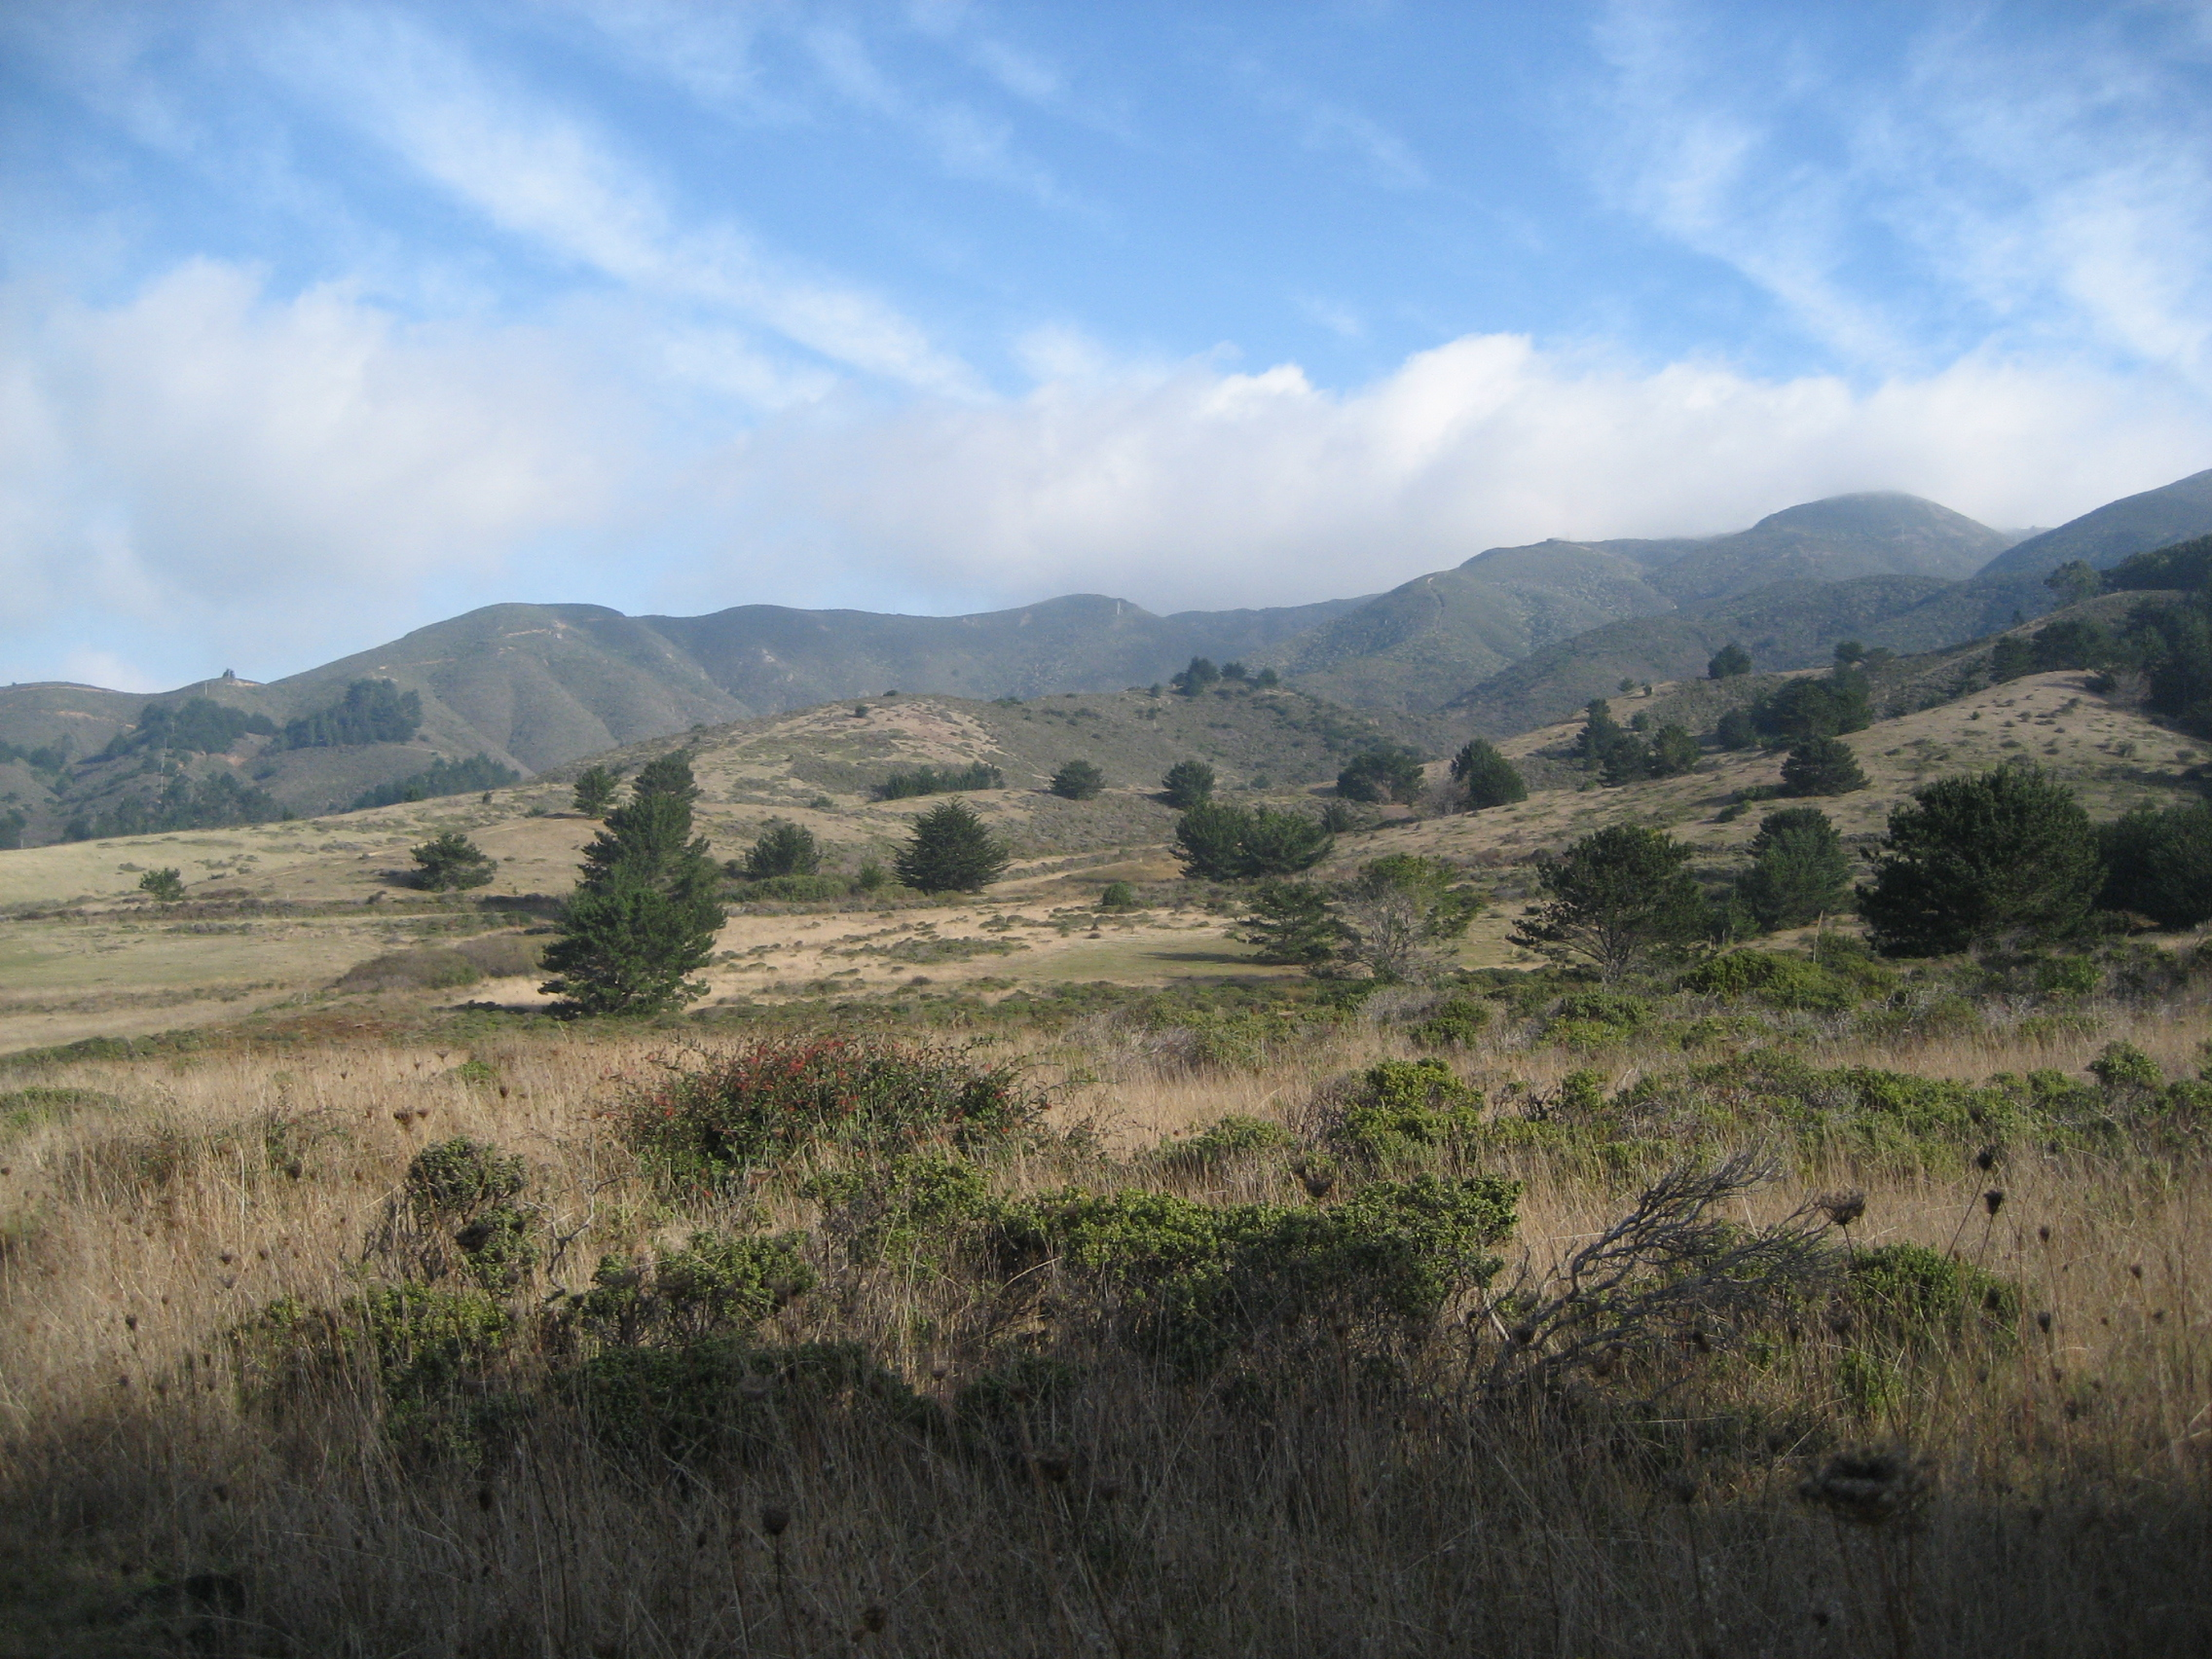 View of Rancho Corral de Tierra